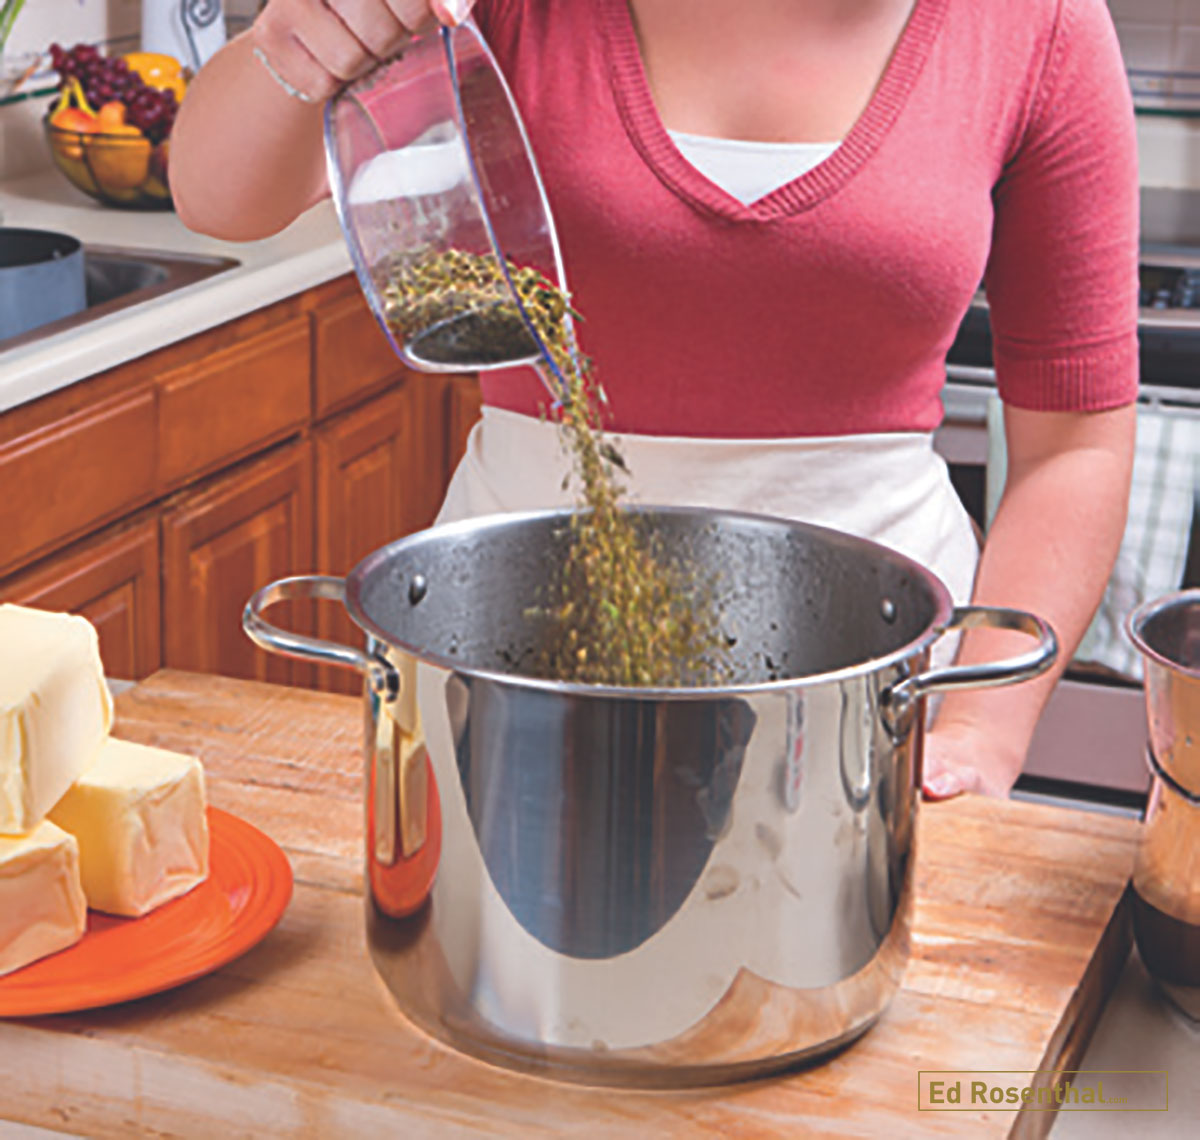 Pouring measured marijuana into cooking pot